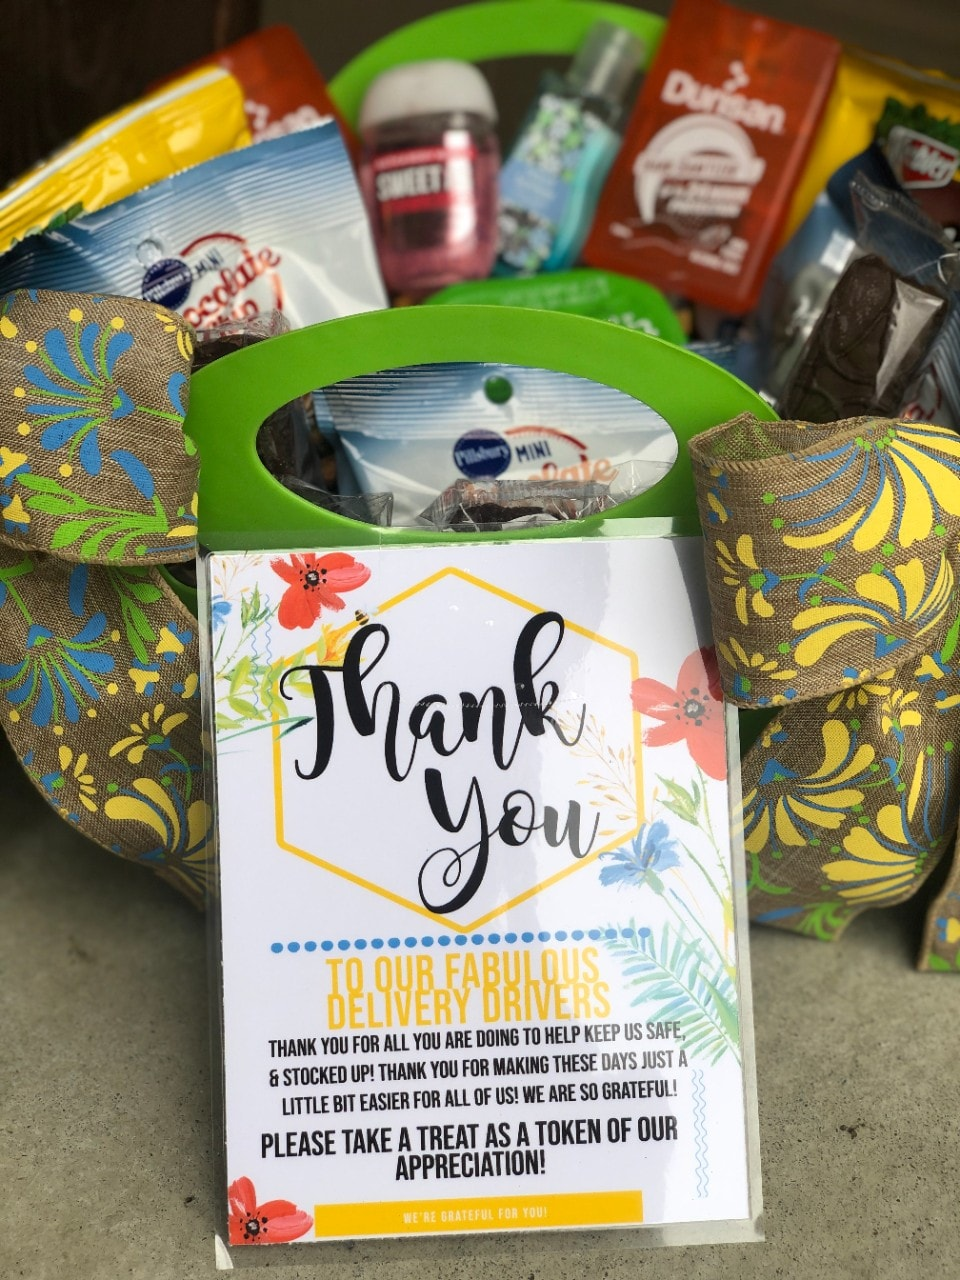 close up of basket of snacks and sanitizer with note that says 'Thank you'